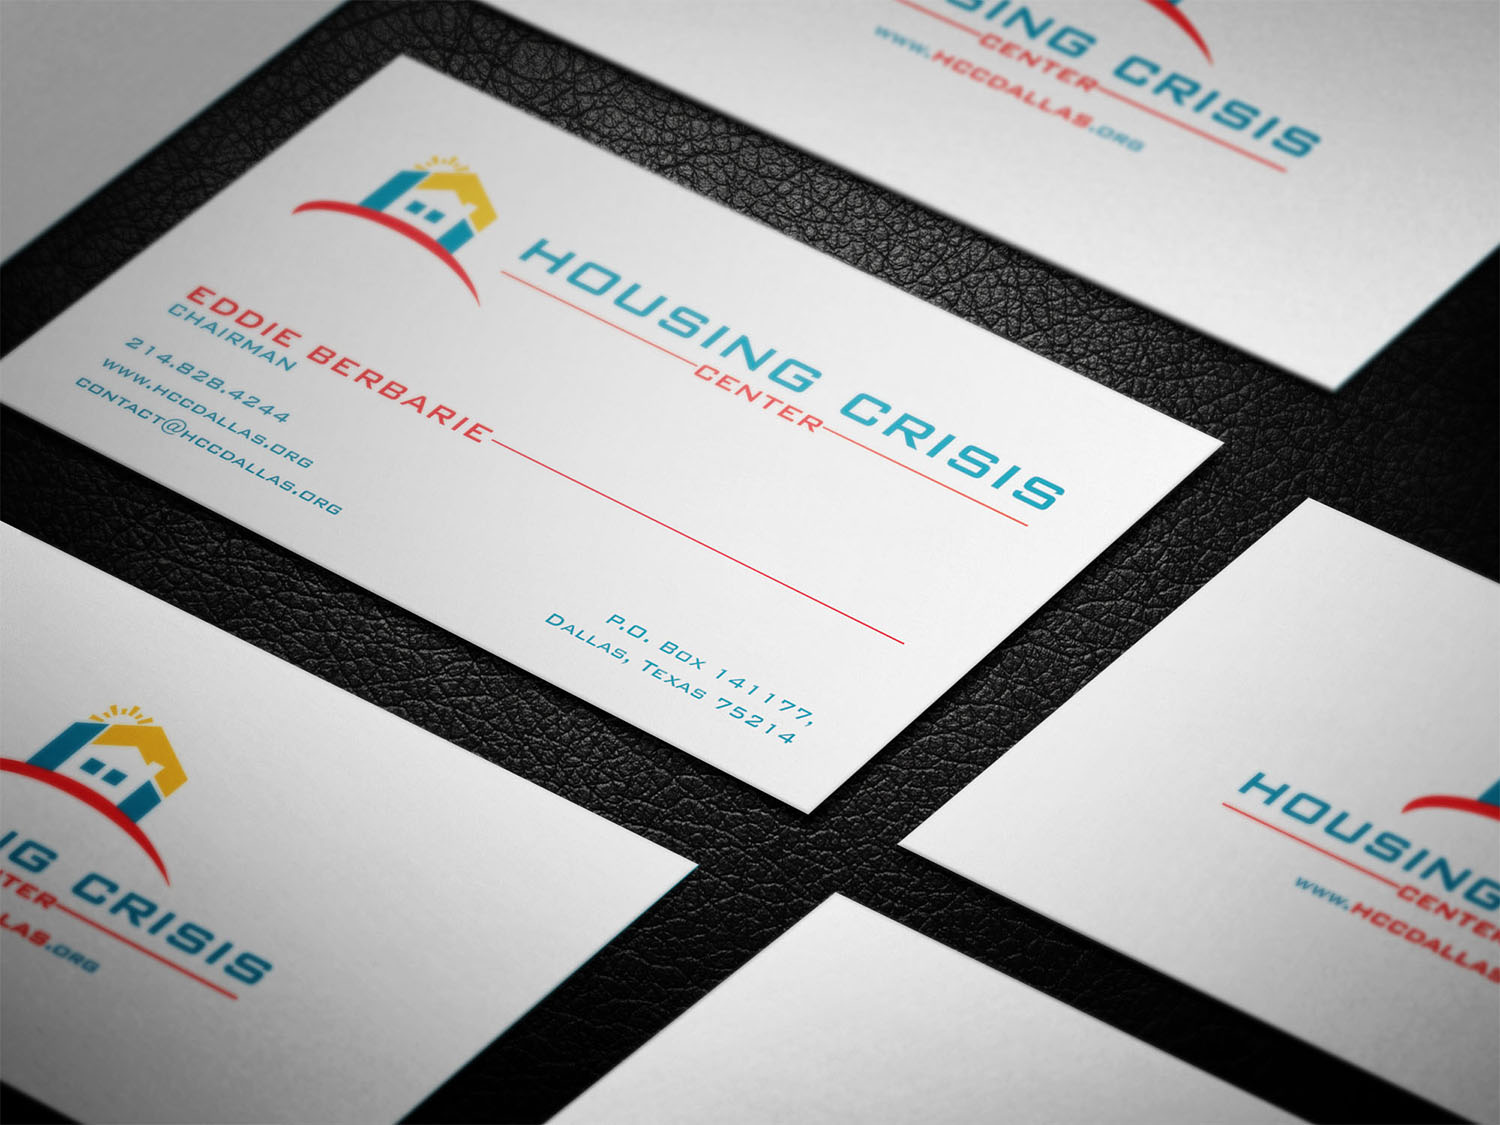 Colorful serious non profit business card design for housing business card design by virtual designs for housing crisis center design 17948098 colourmoves